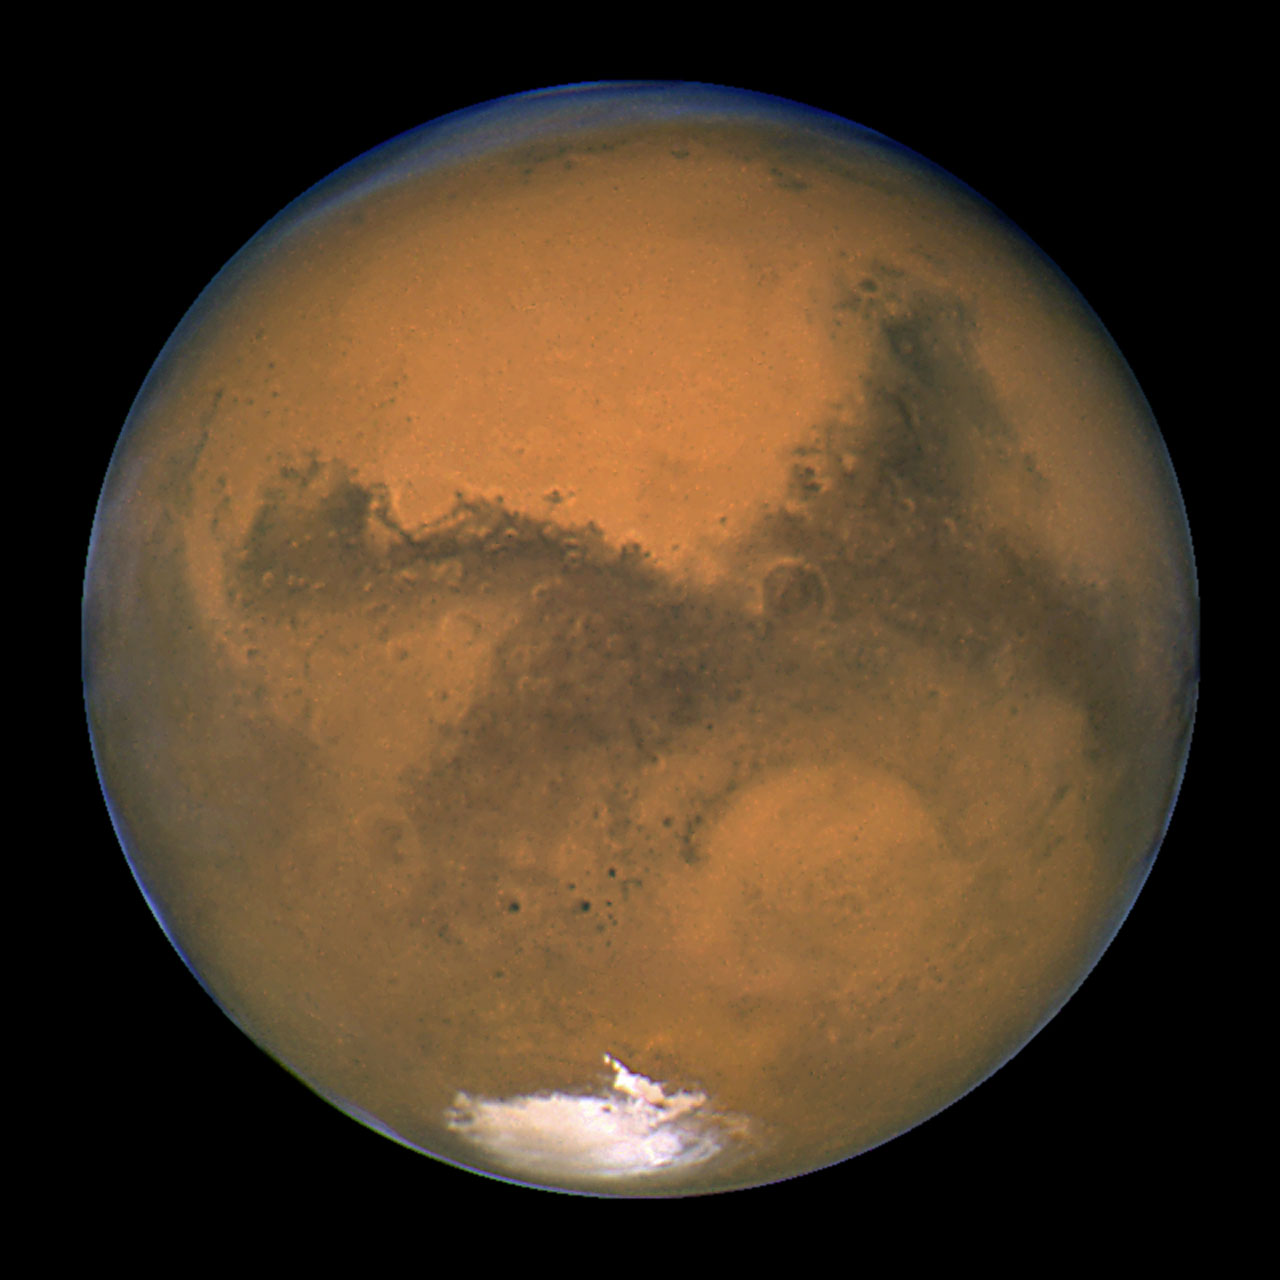 Mars Hubble Telescope Hubble's Closest View of Mars